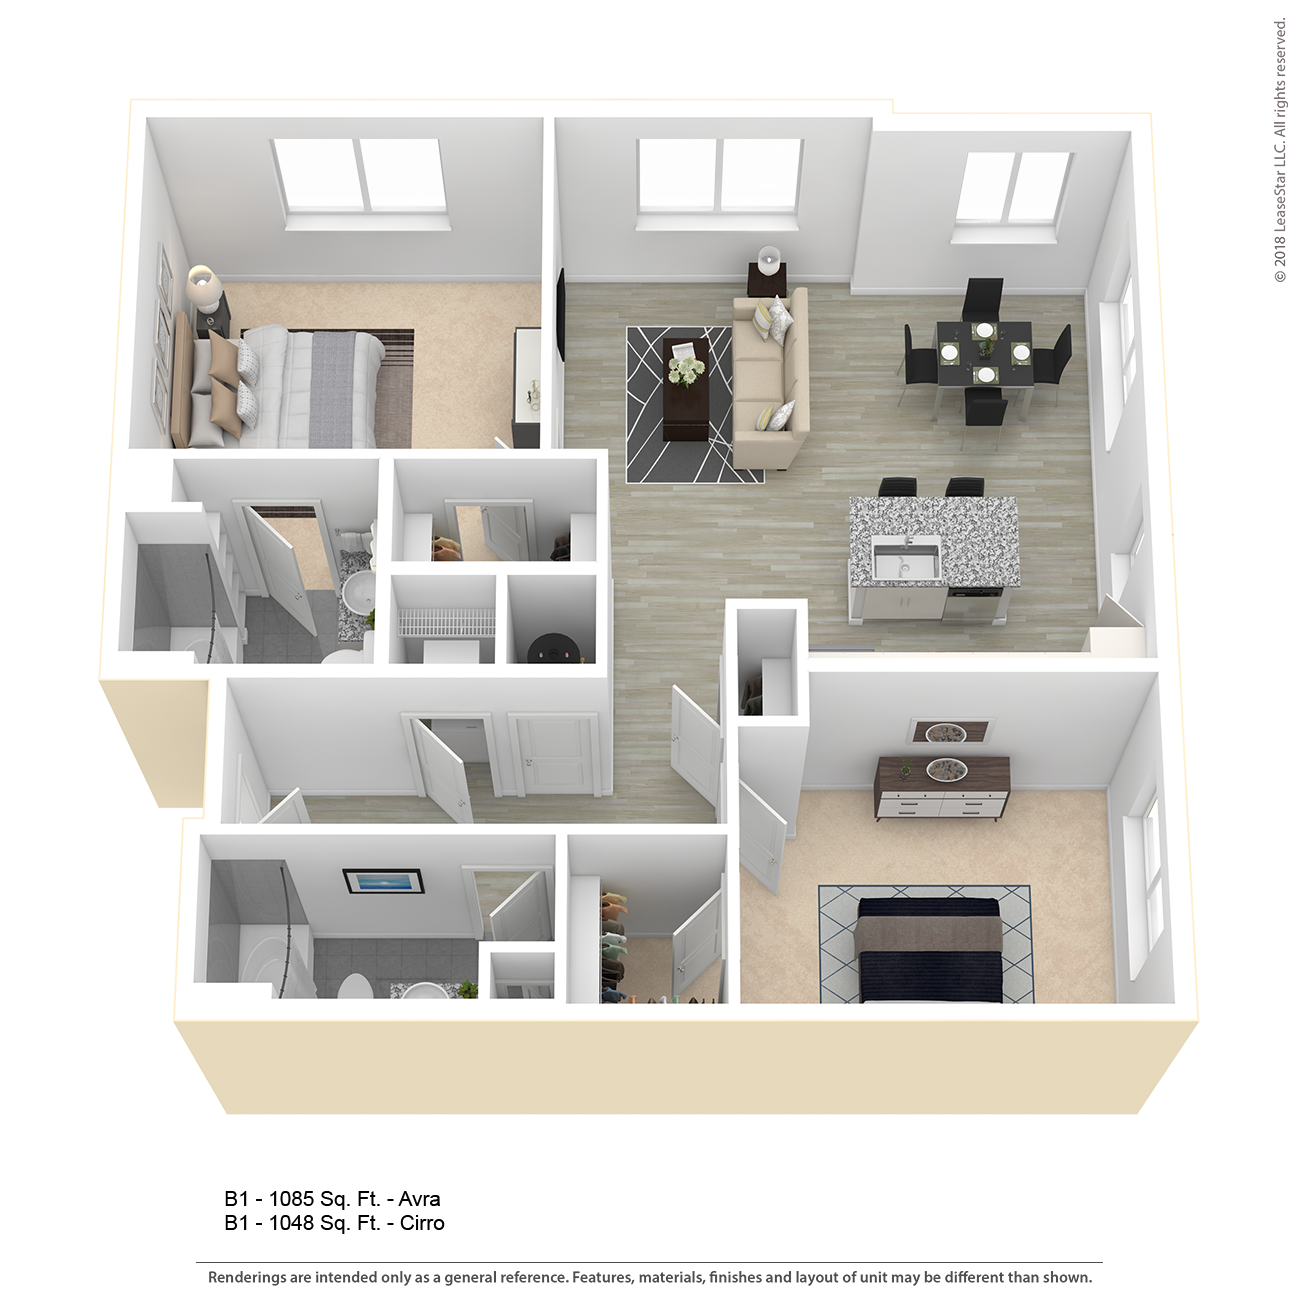 Center West Apartments Baltimore Md: B1 Apartment Floor Plan